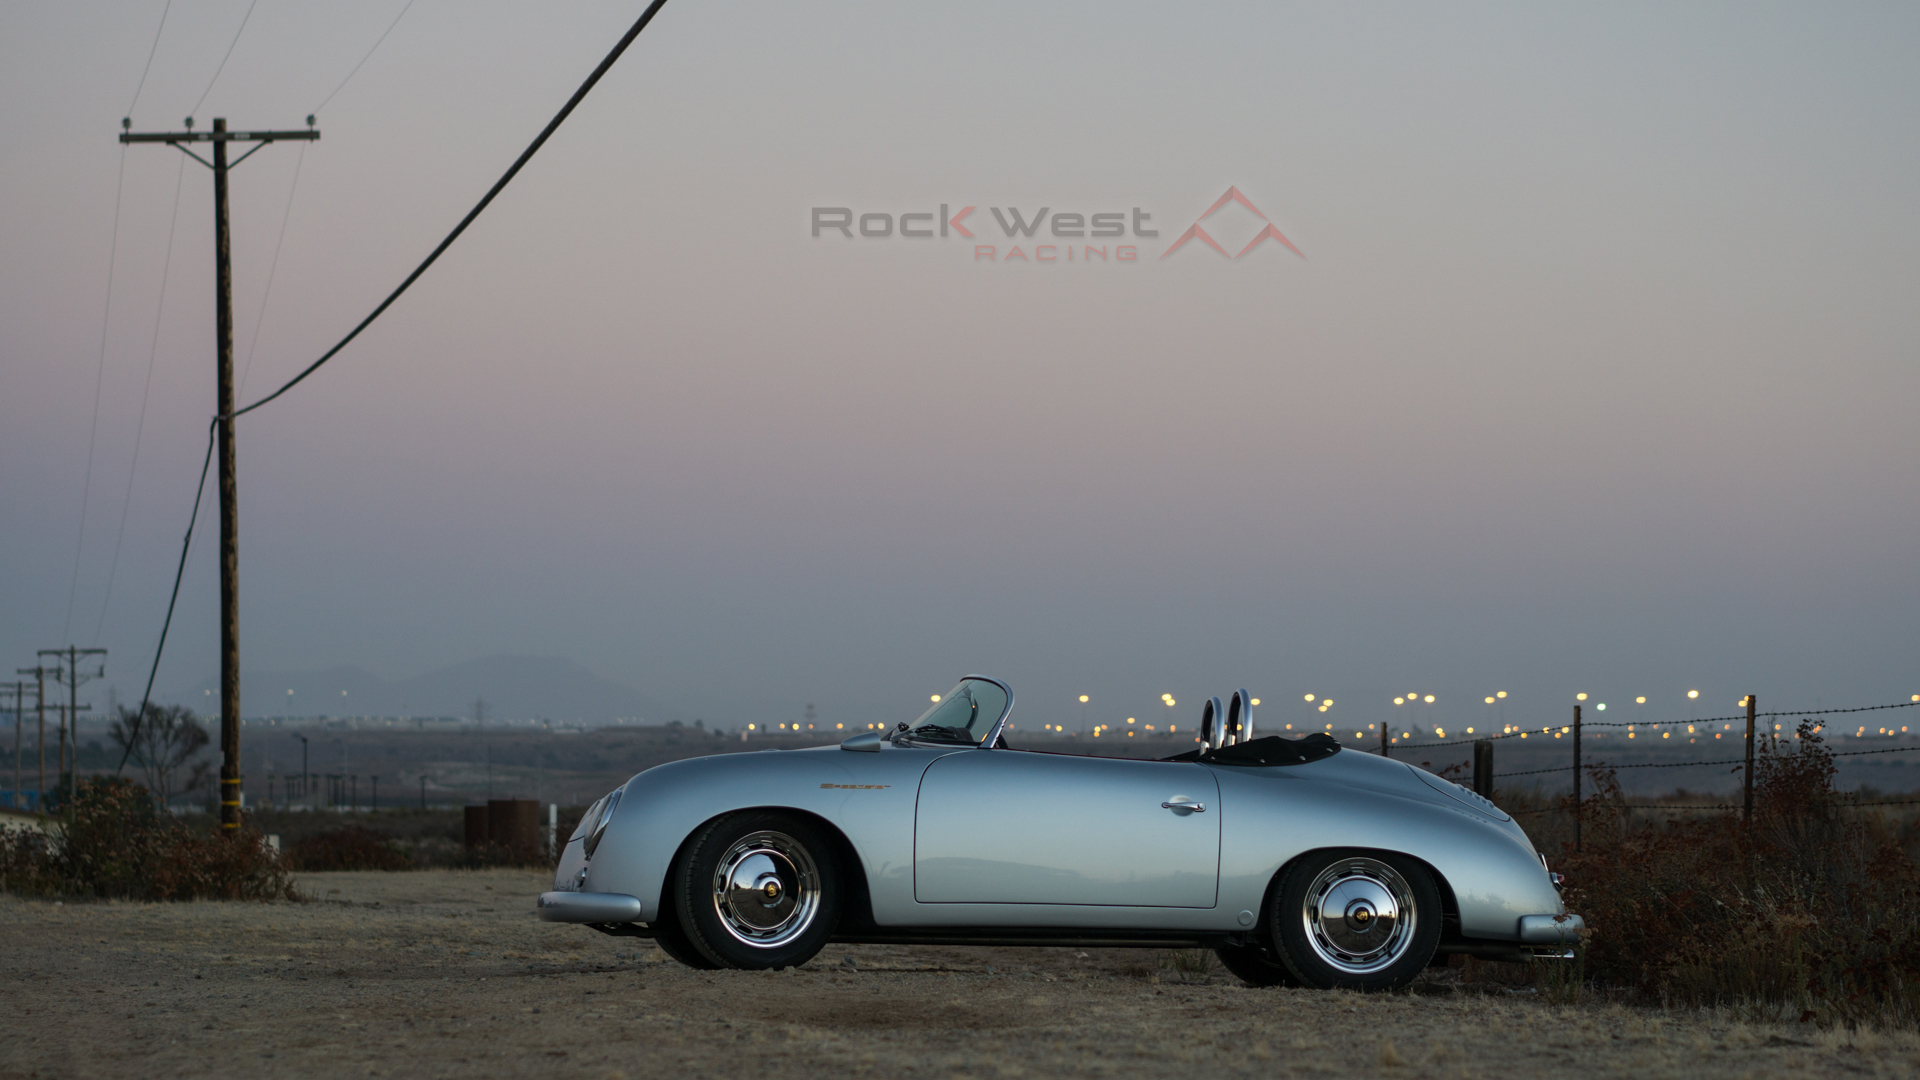 RW Speedster – Silver at Sunset (1920 x 1080 pixels)